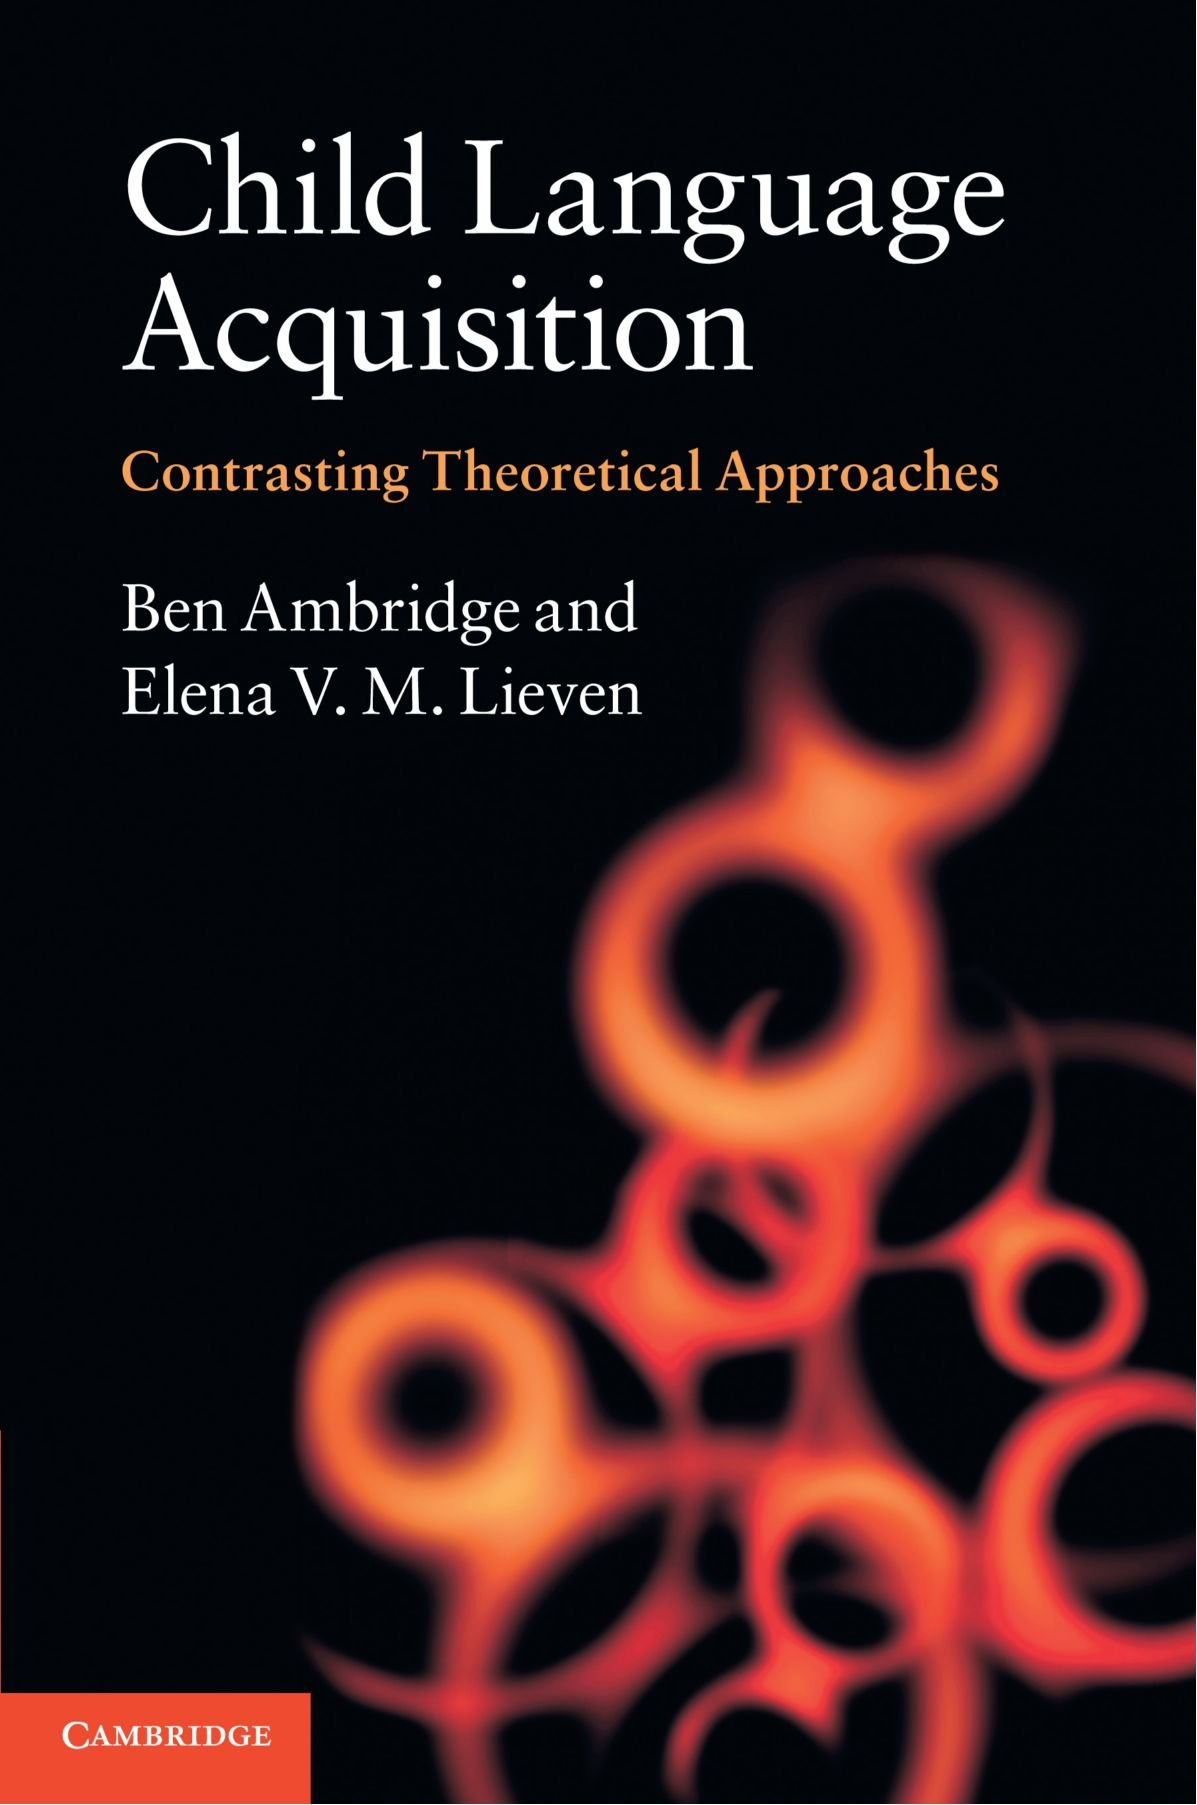 Child Language Acquisition: Contrasting Theoretical Approaches by Cambridge University Press